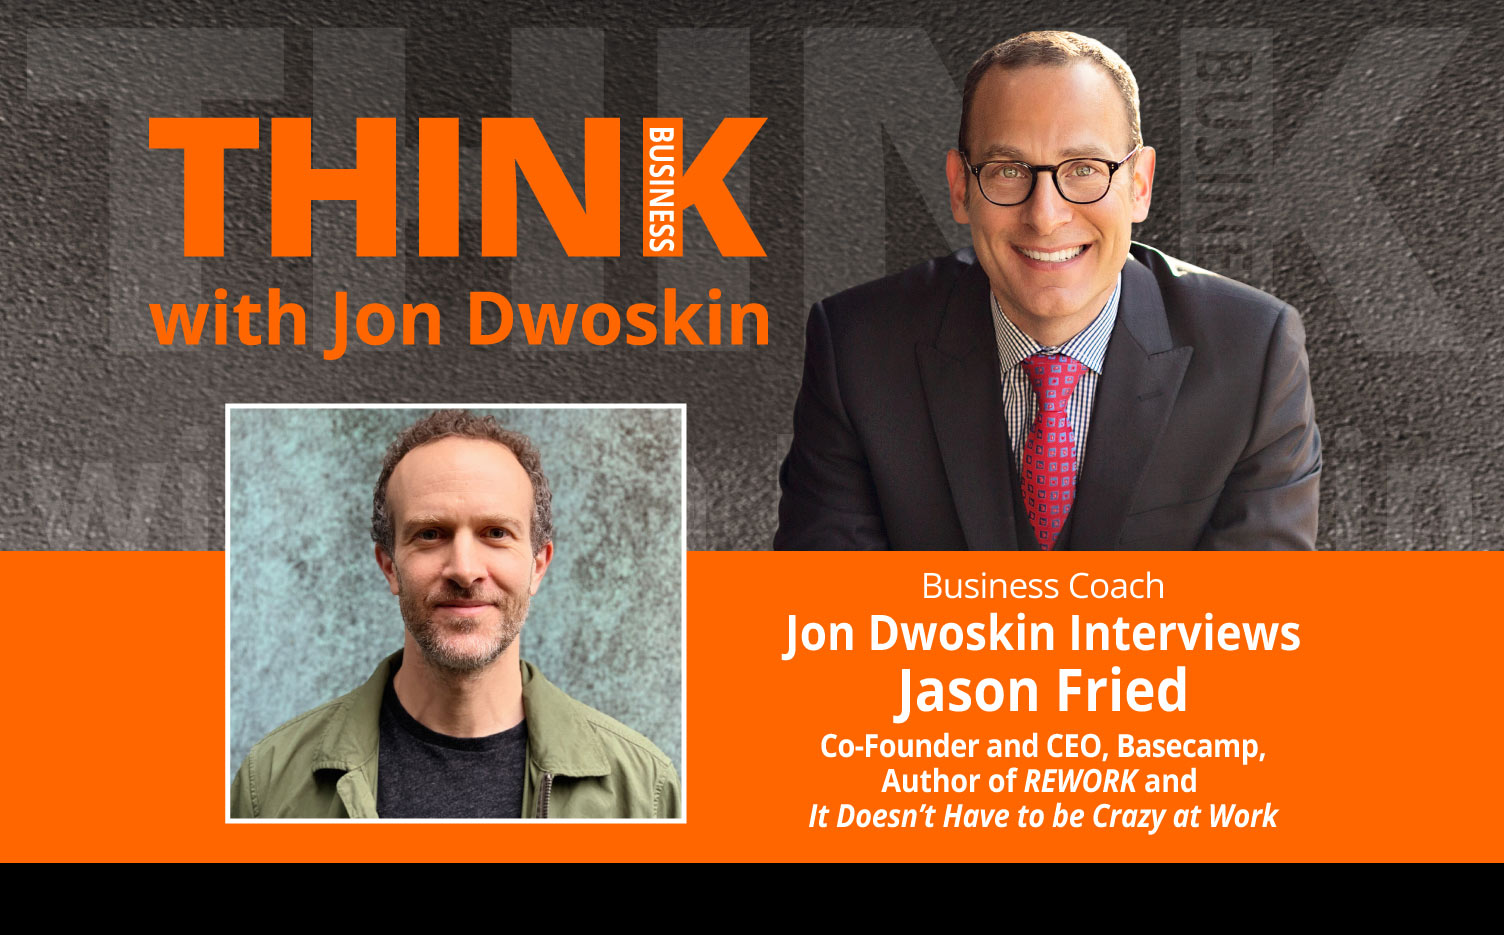 THINK Business Podcast: Jon Dwoskin Interviews Jason Fried, Author, Co-Founder and CEO of Basecamp